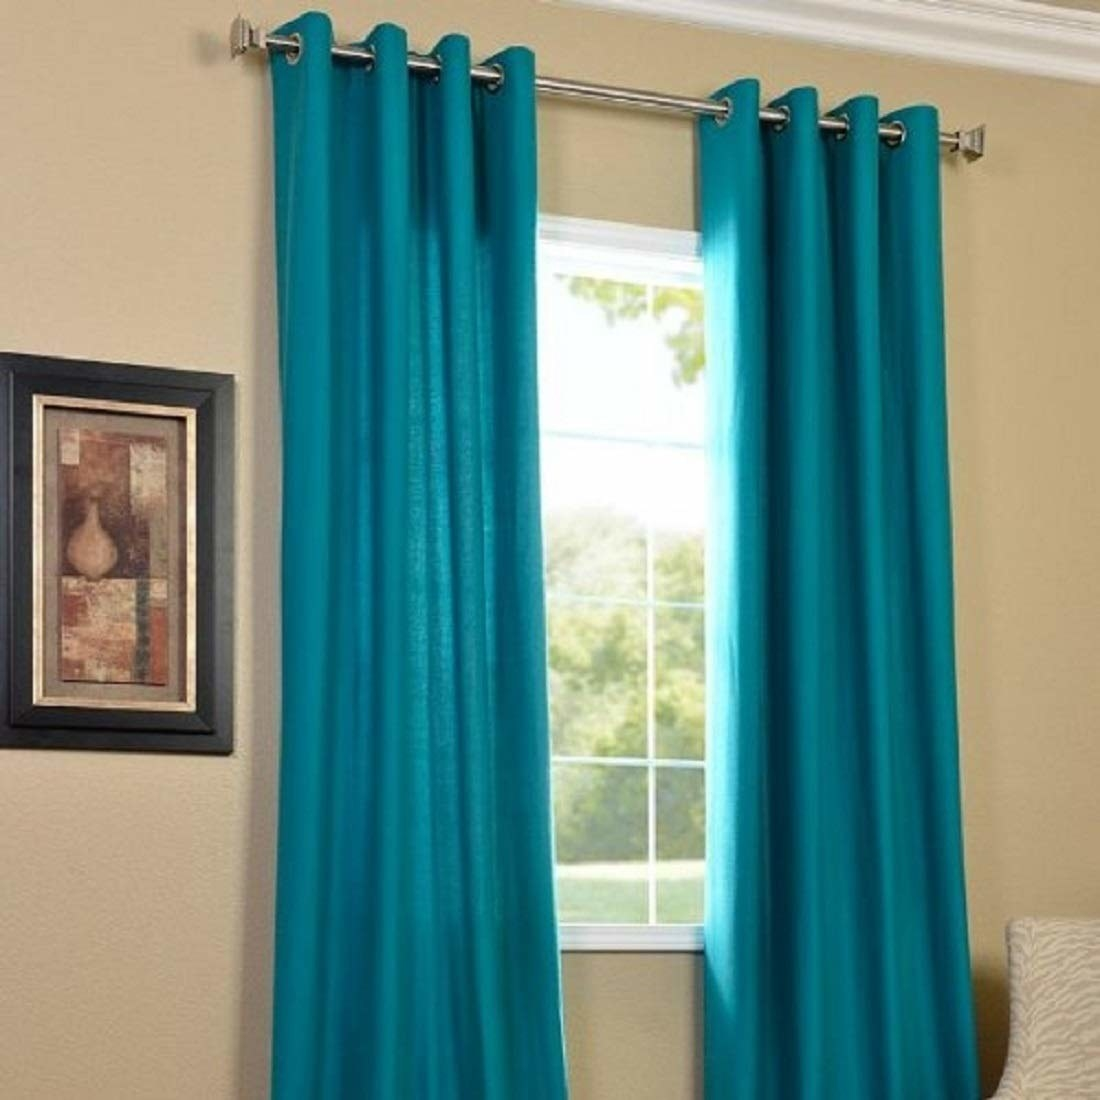 Two aqua curtains on a window